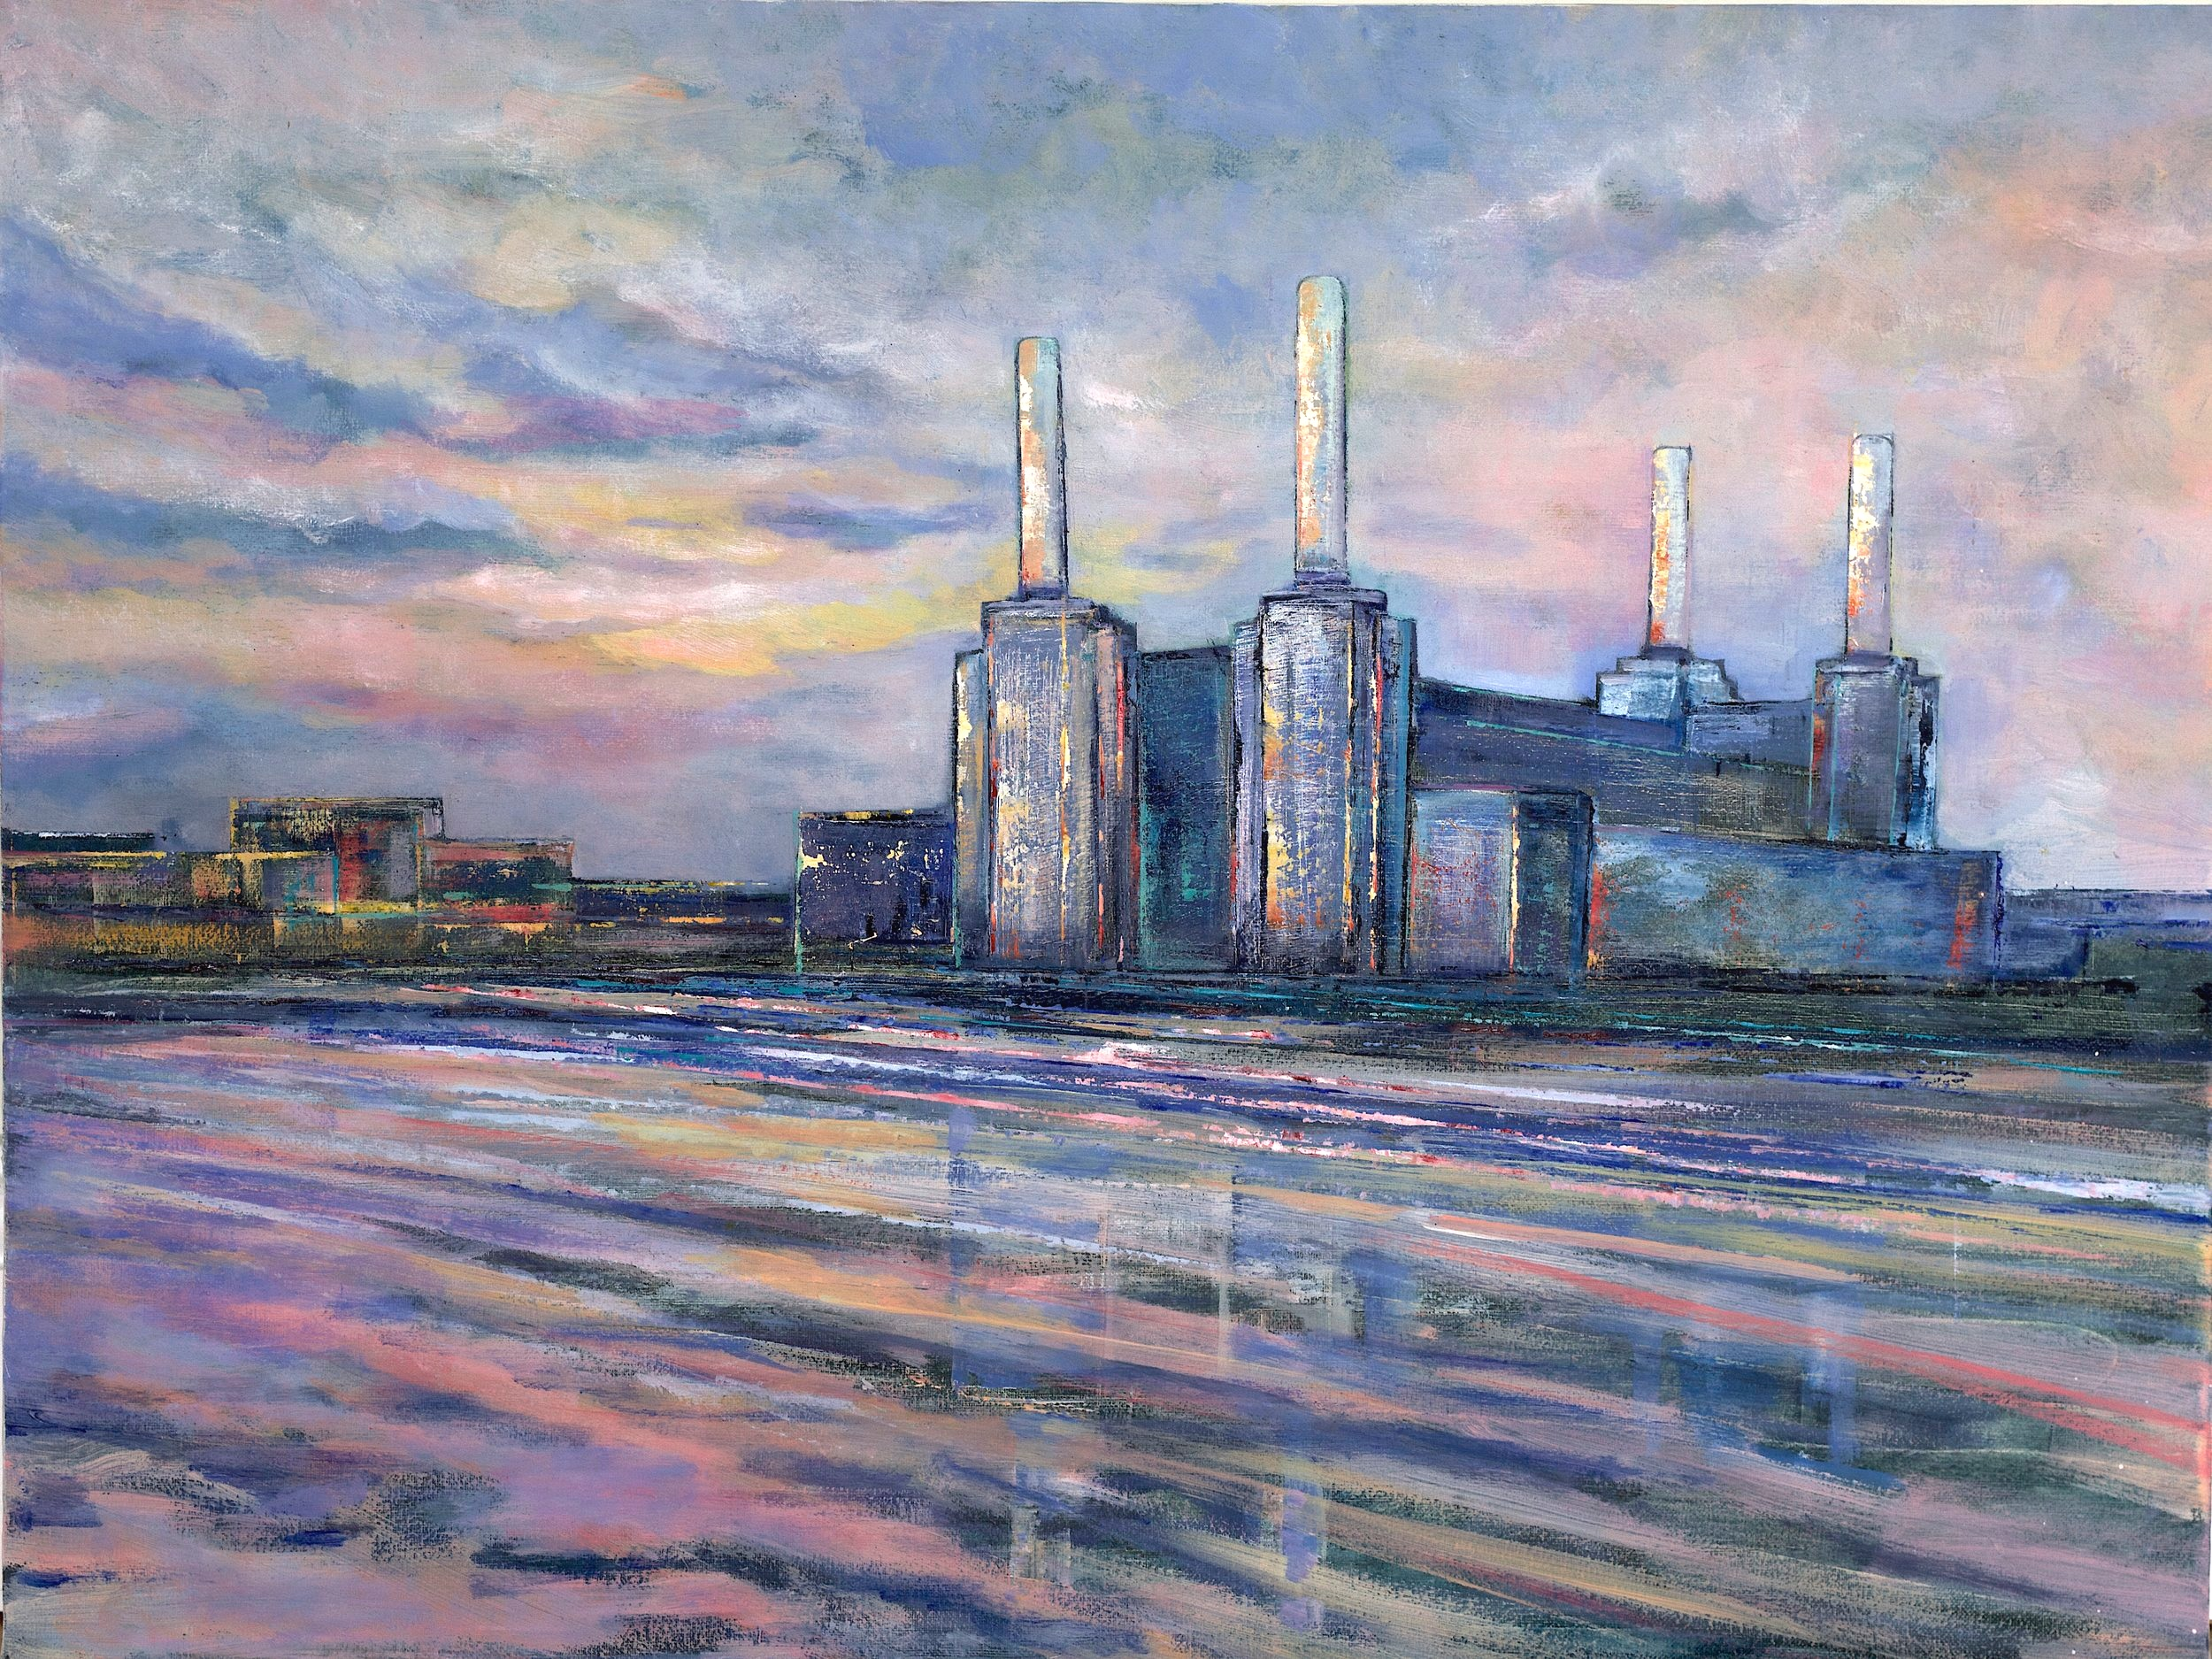 Battersea Power Station #2 - 80cm x 60cm, Oil on Box Canvas£850 (Unframed)